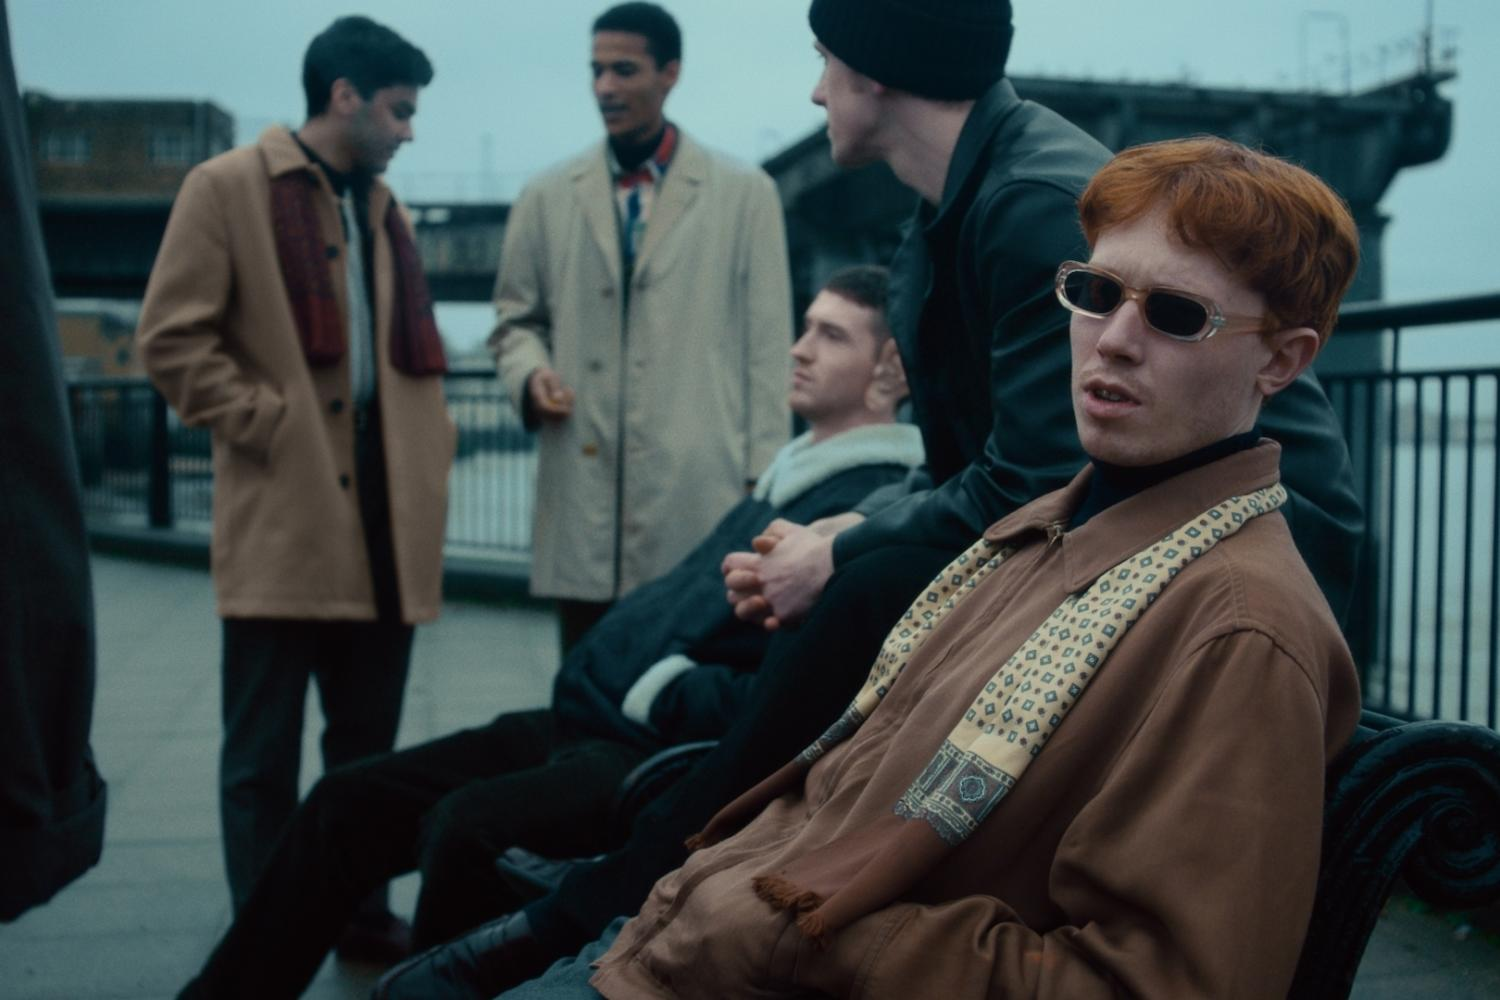 King Krule releases new track 'Alone, Omen 3'